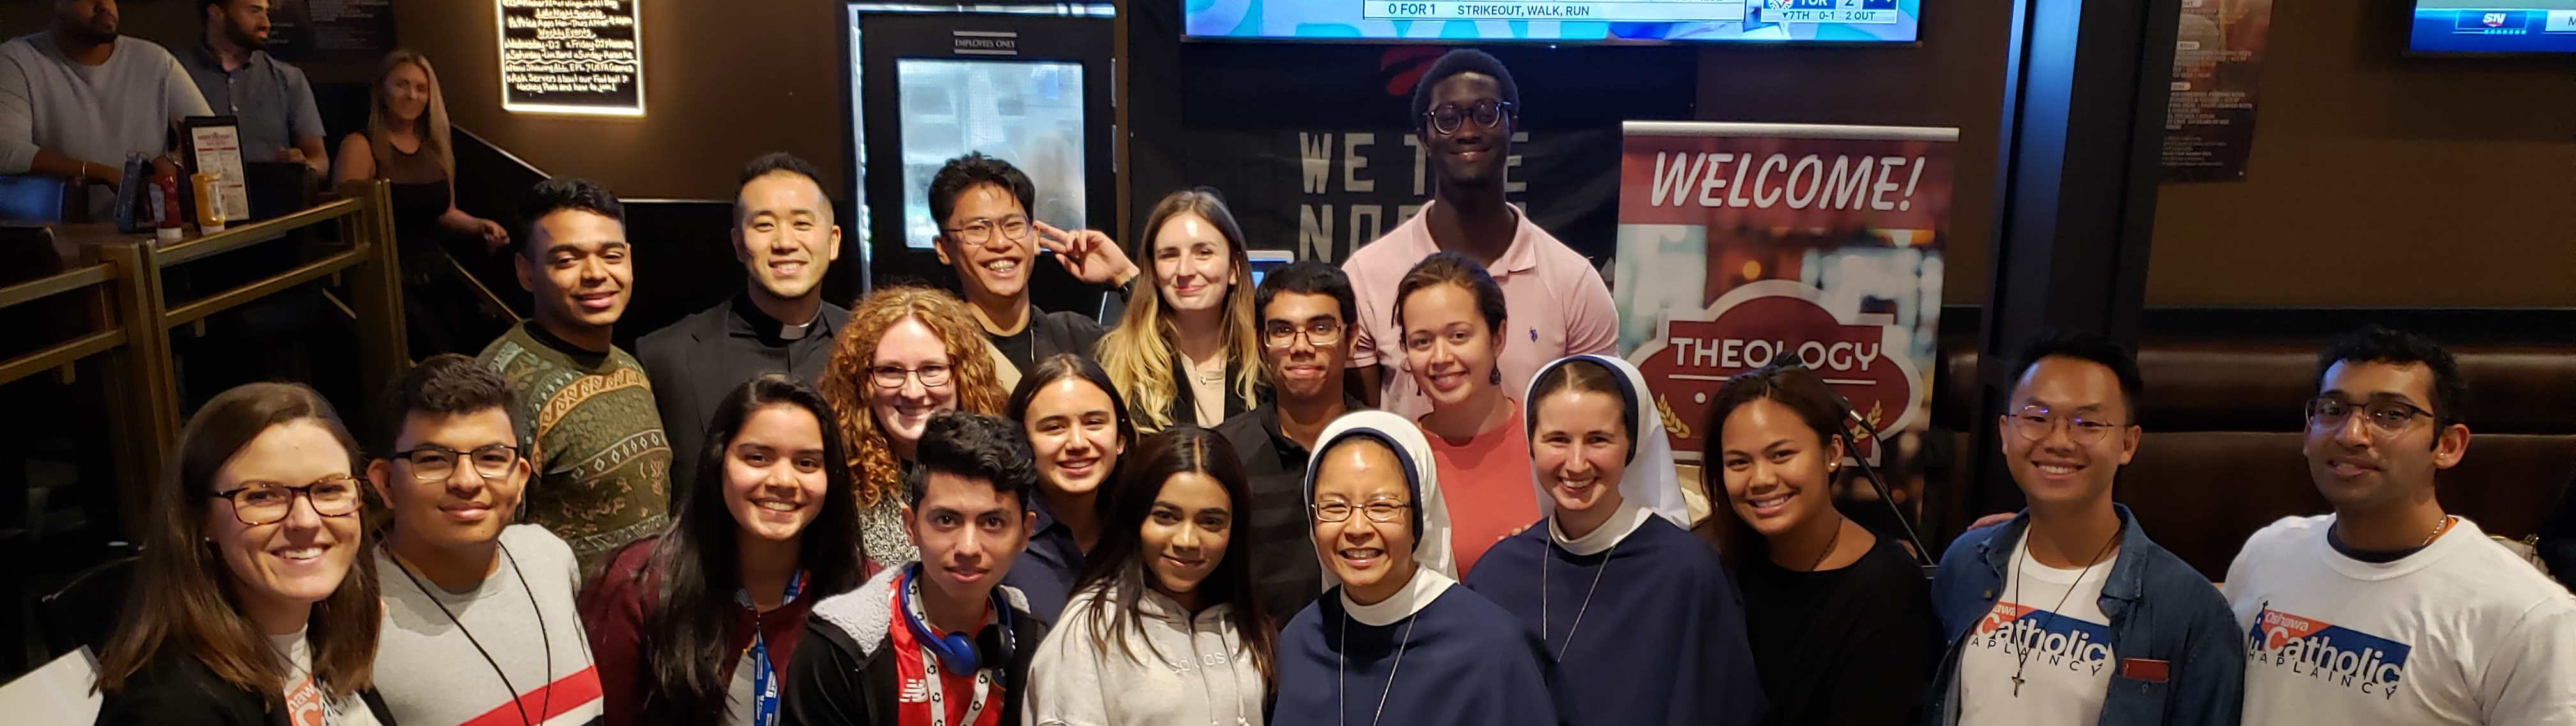 Group of male and female young adults with a few nuns gathered inside a pub/restaurant smiling for a photo